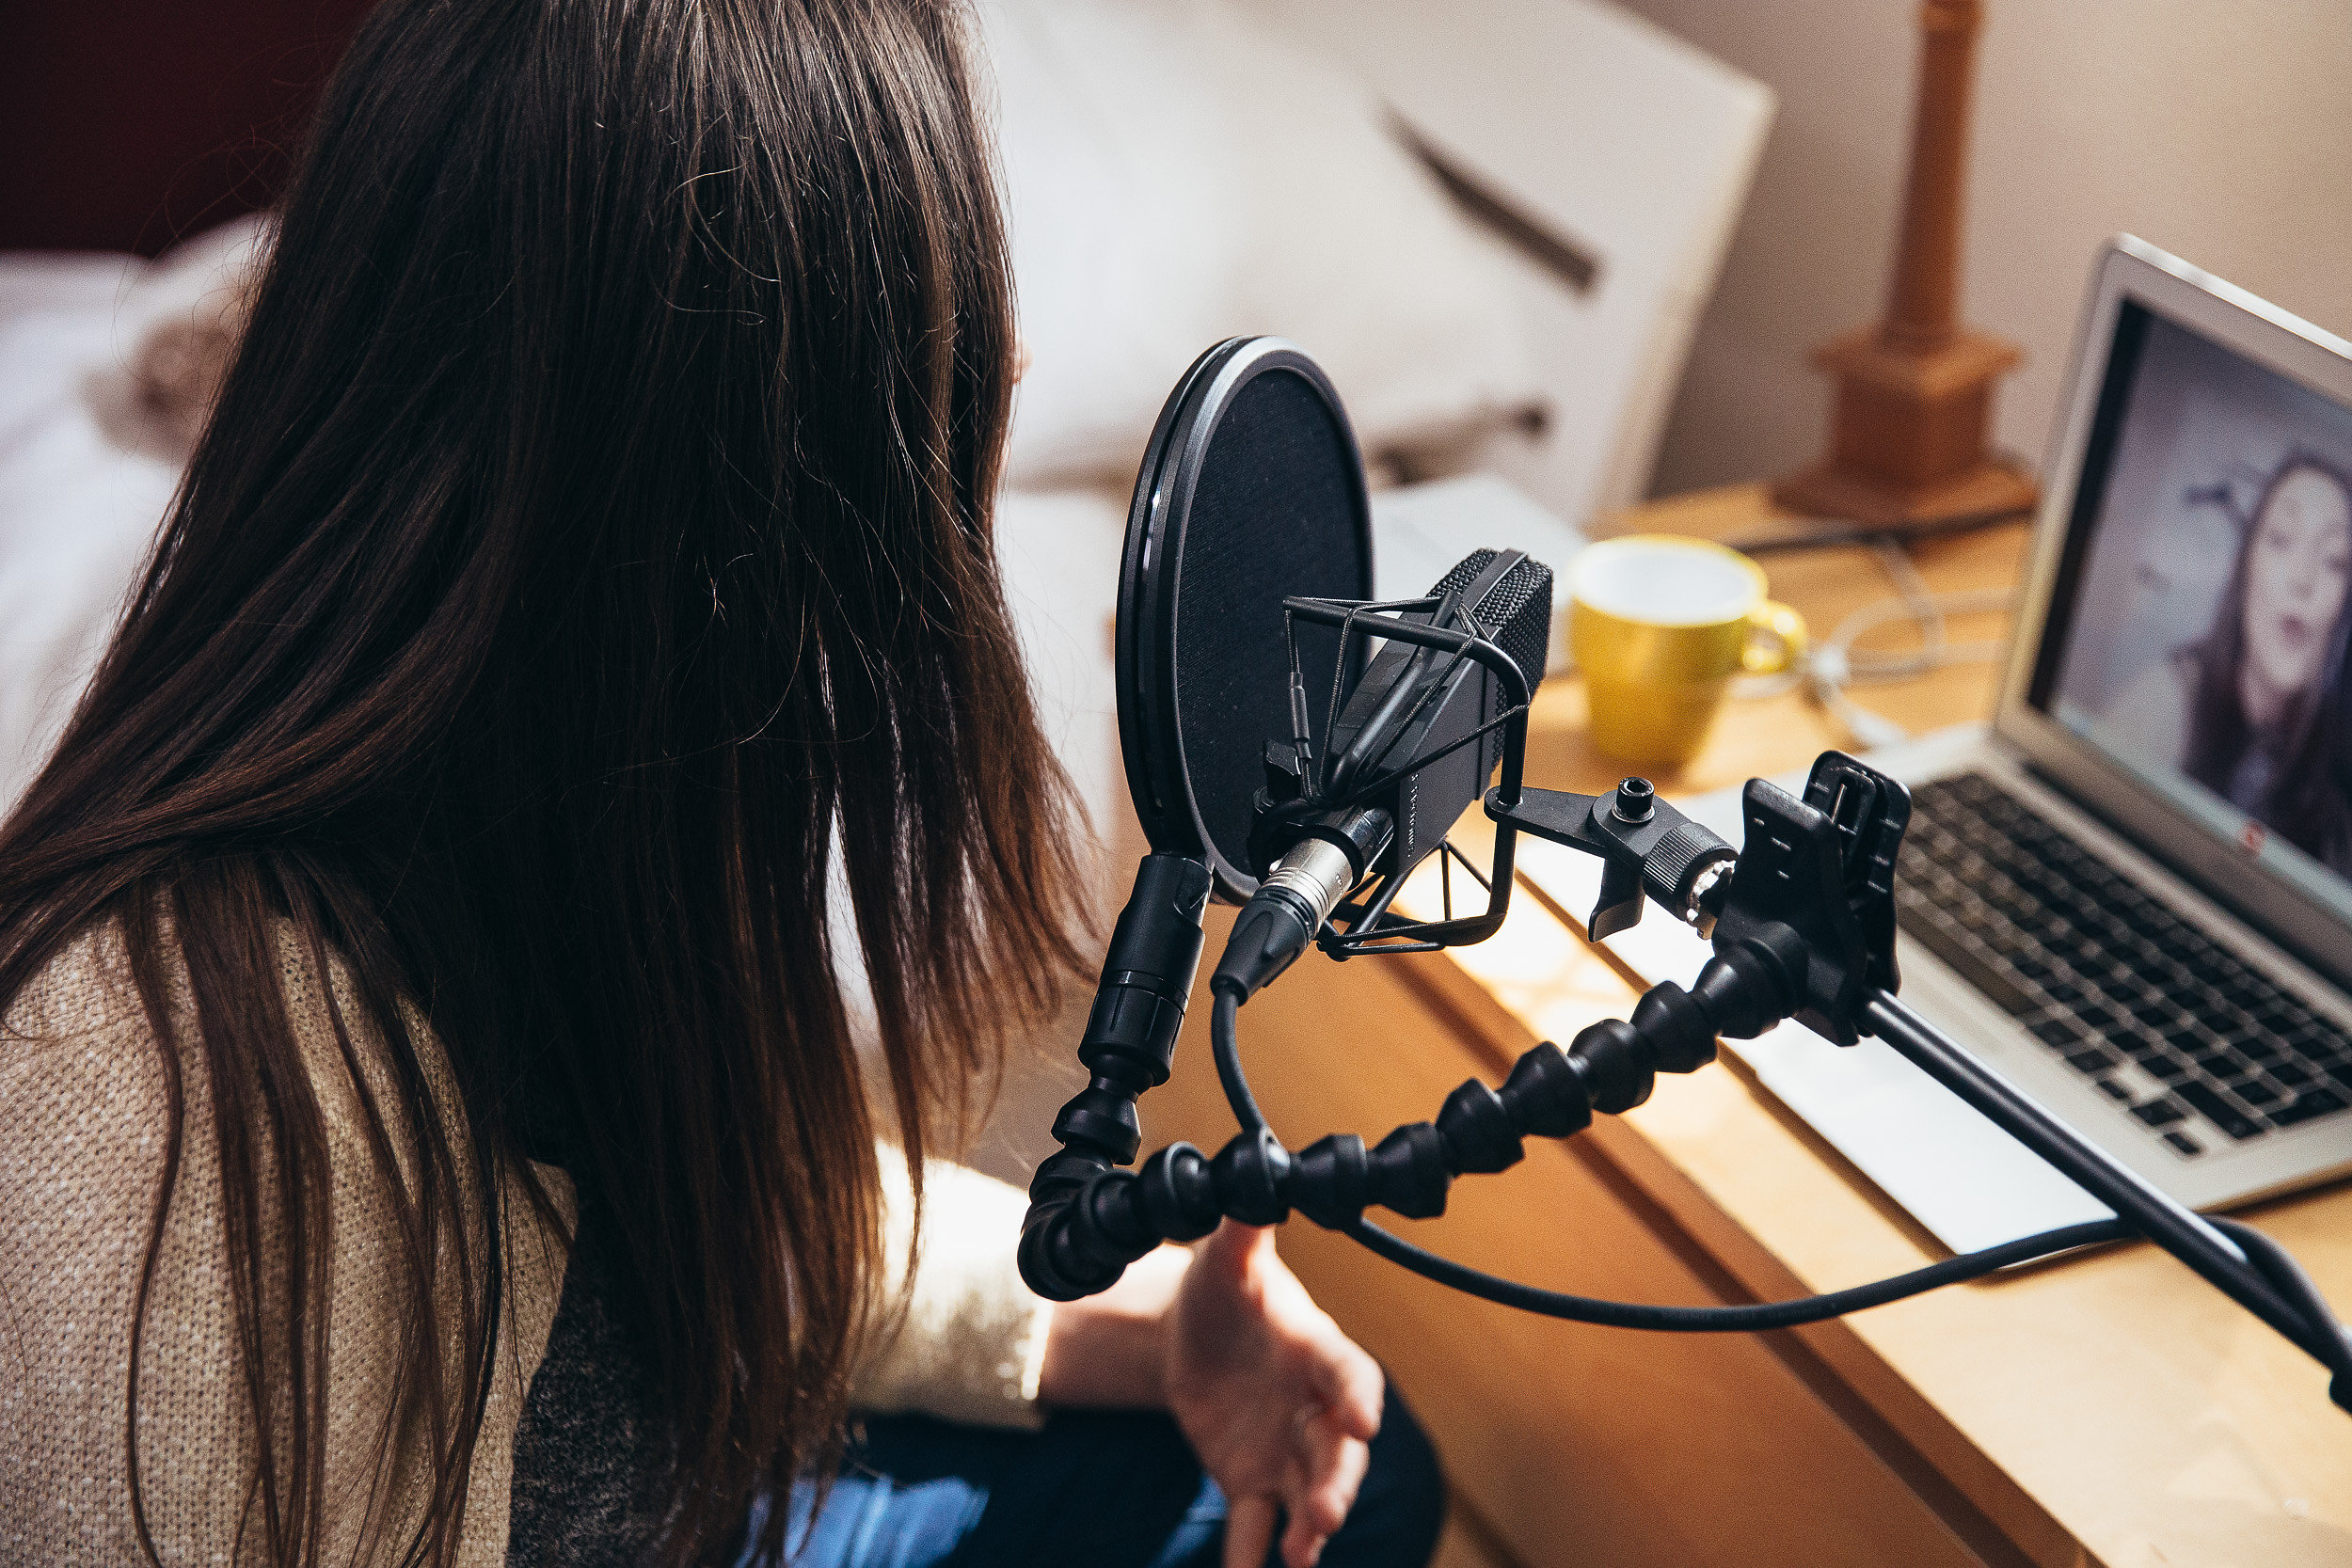 Pop shields are great for video bloggers and voice over artists too